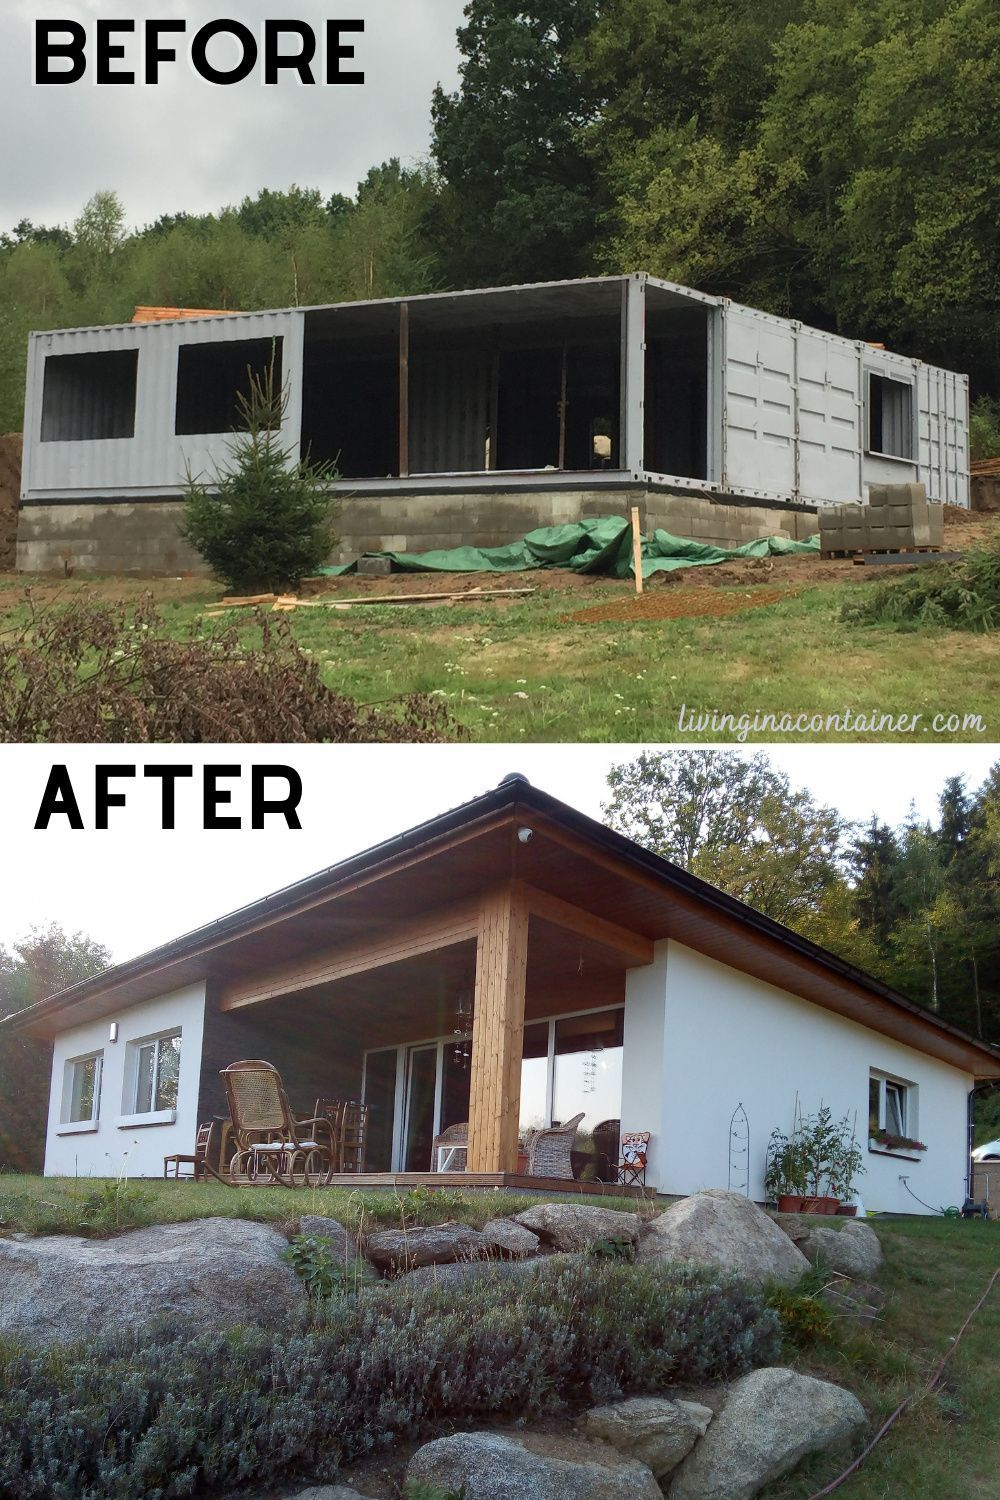 Successful Home Conversion of Shipping Containers in the Czech Republic – Living in a Container